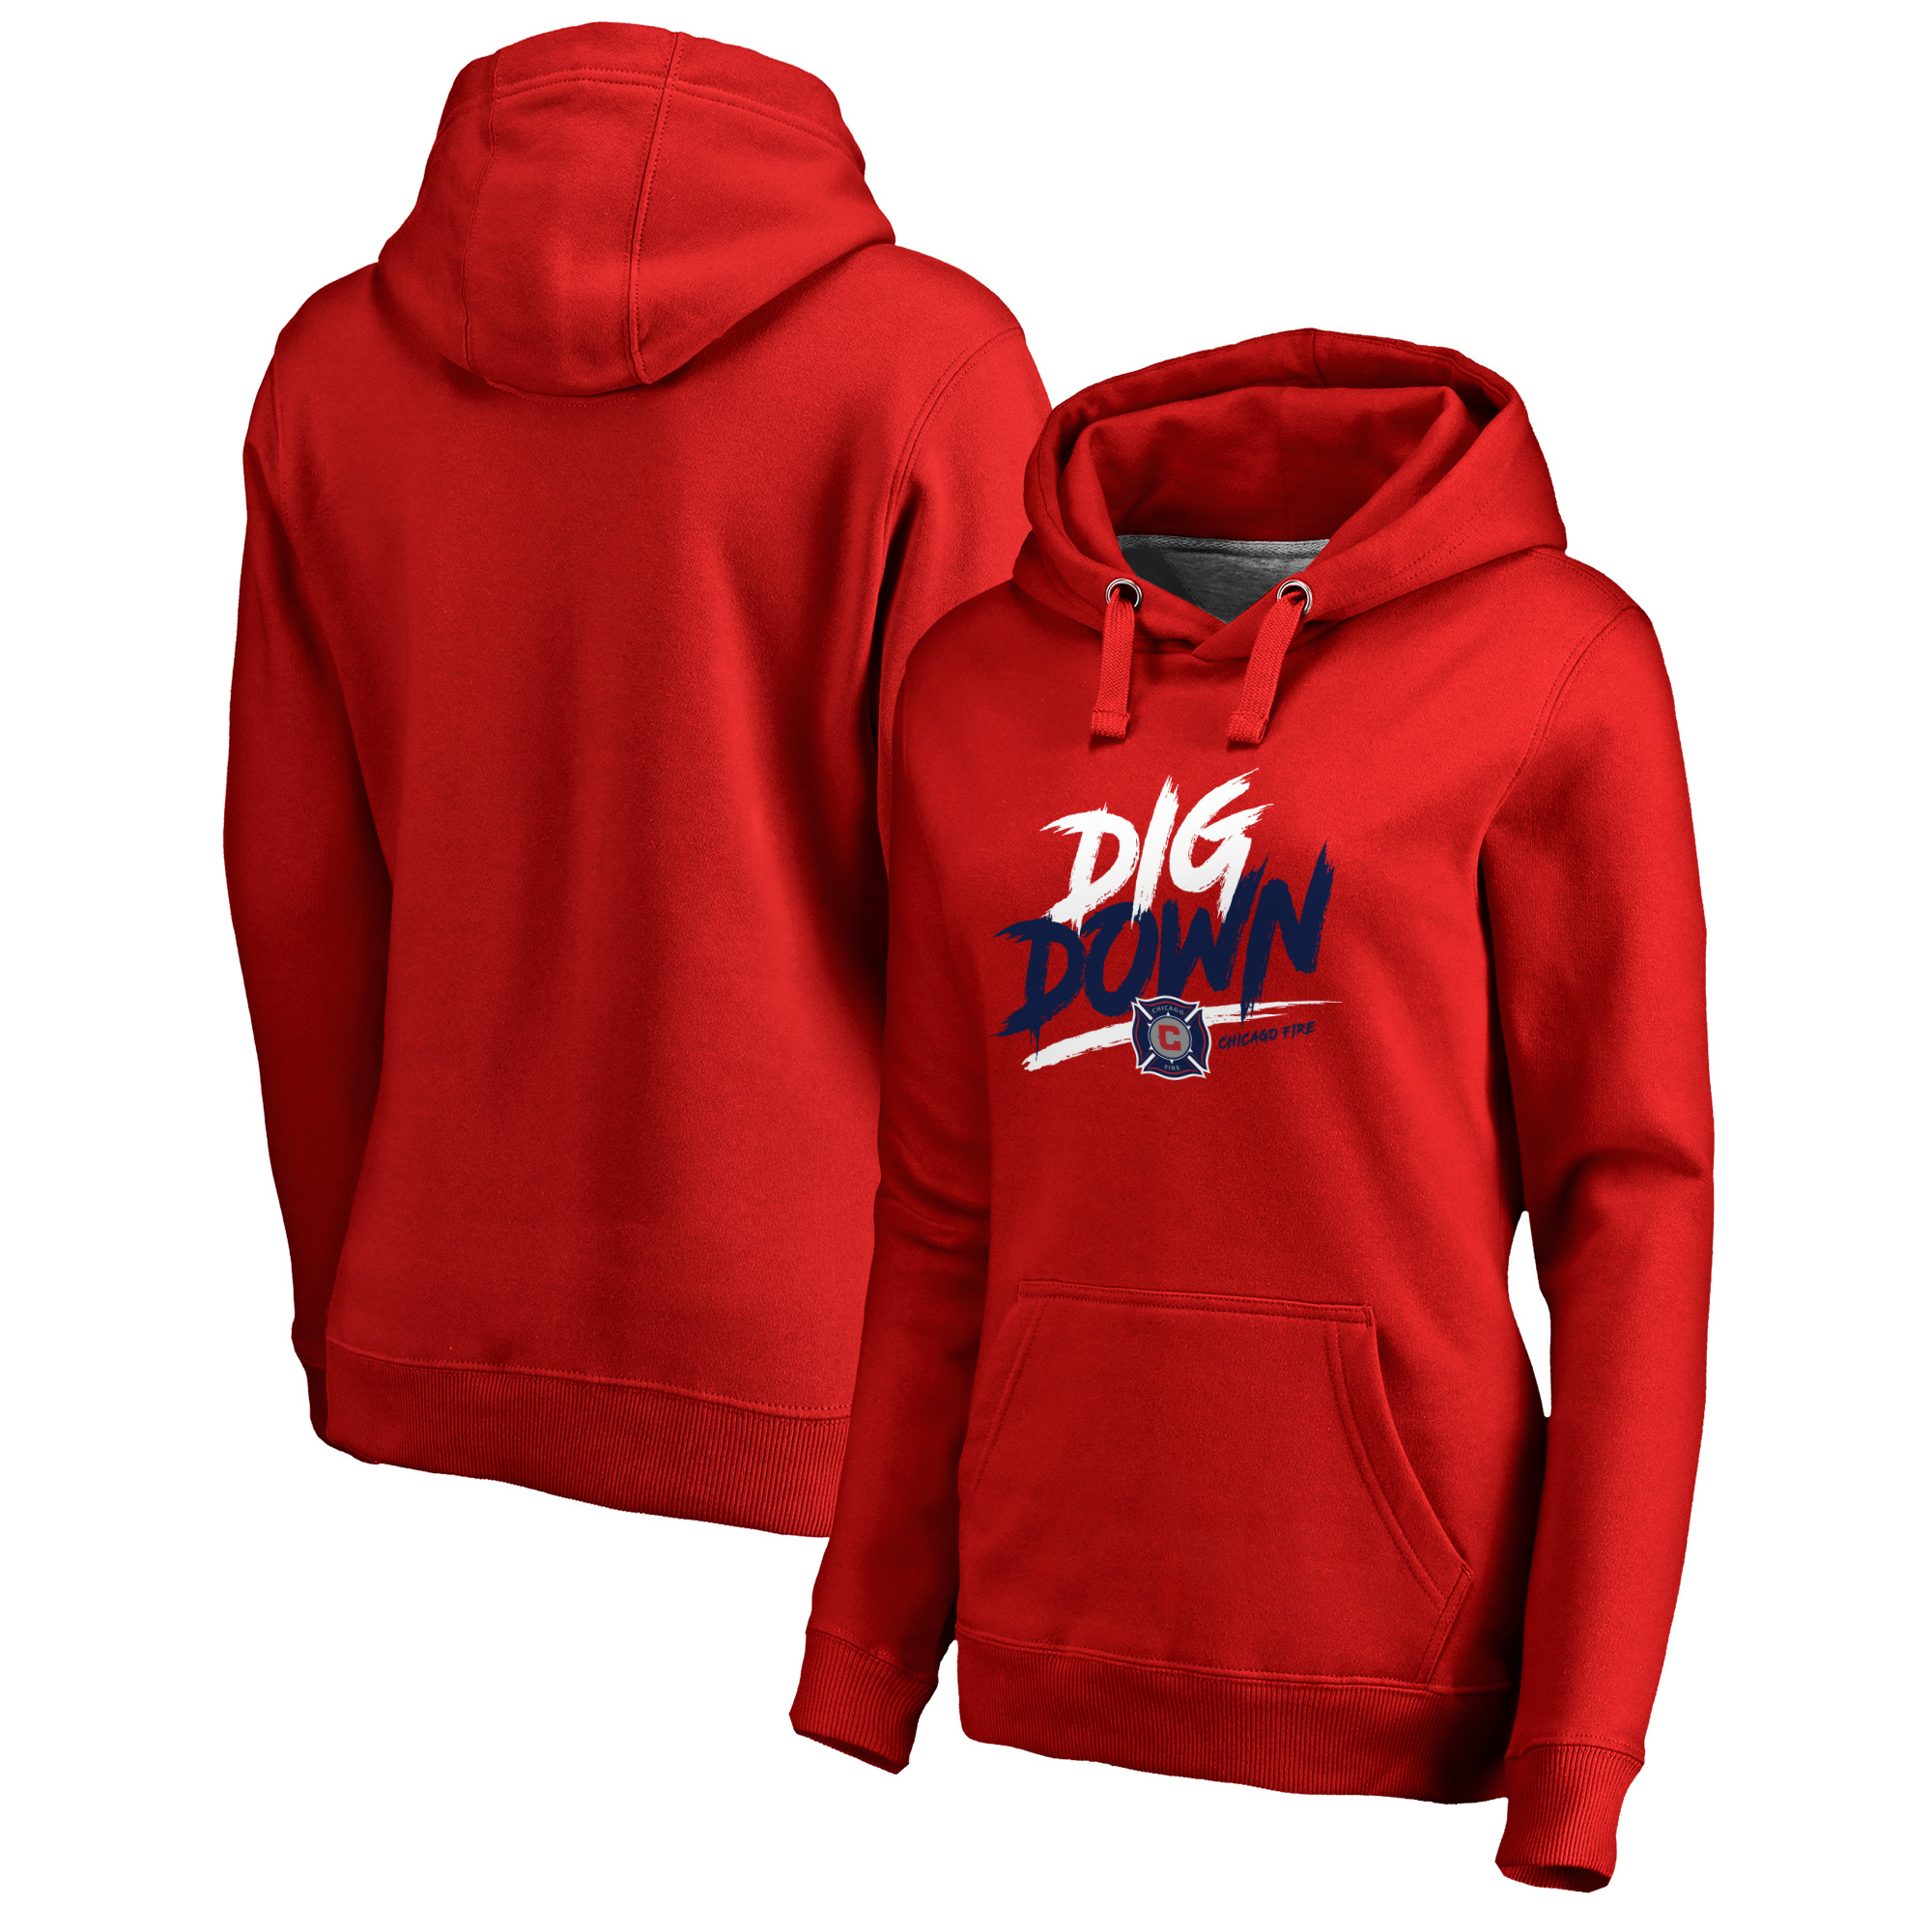 Chicago Fire Fanatics Branded Women's Dig Down Pullover Hoodie - Red